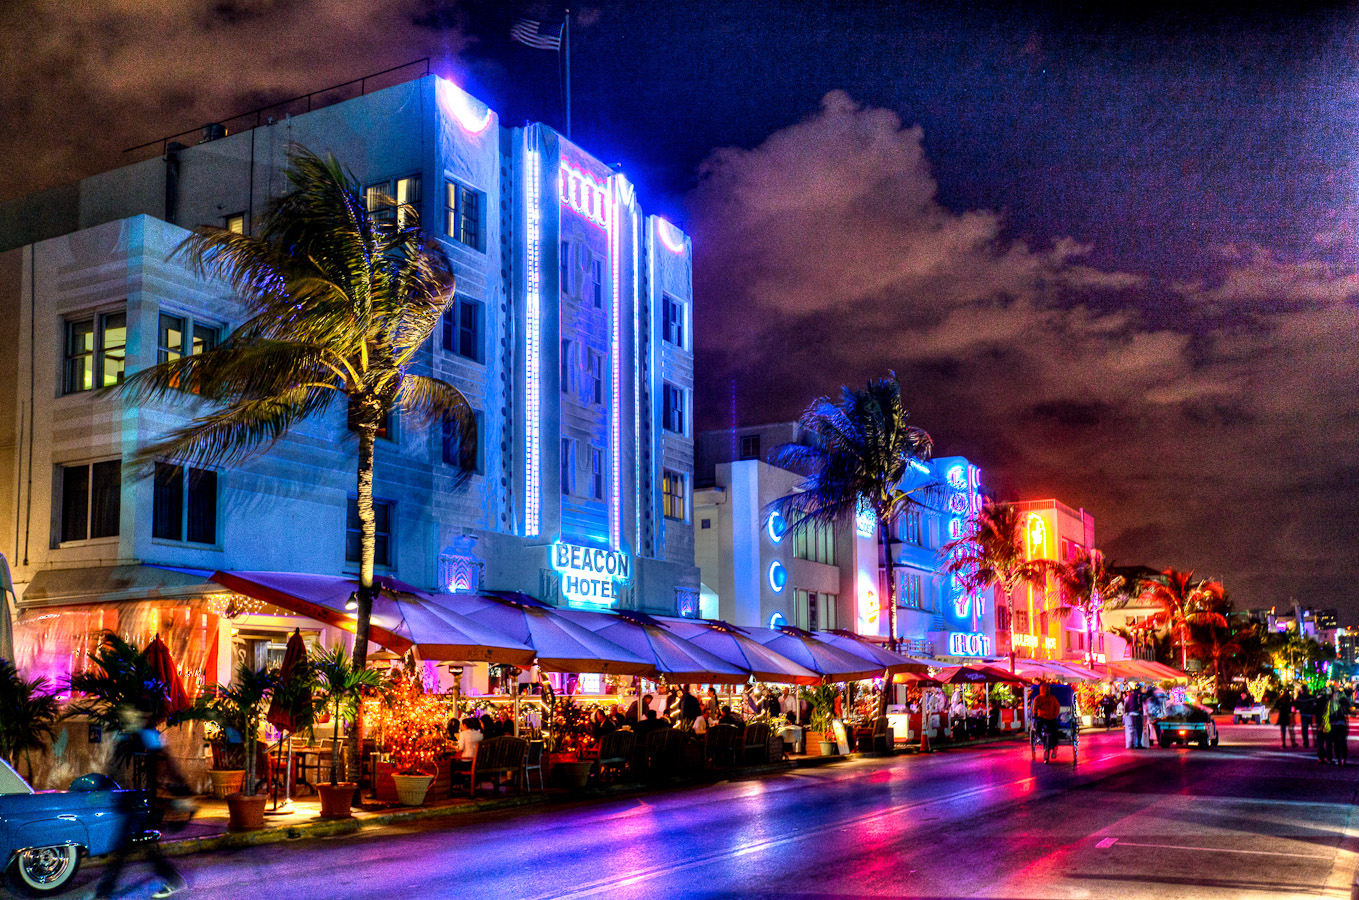 Beacon Hotel Fine Art Photography By Sam Dobrow Miami Florida